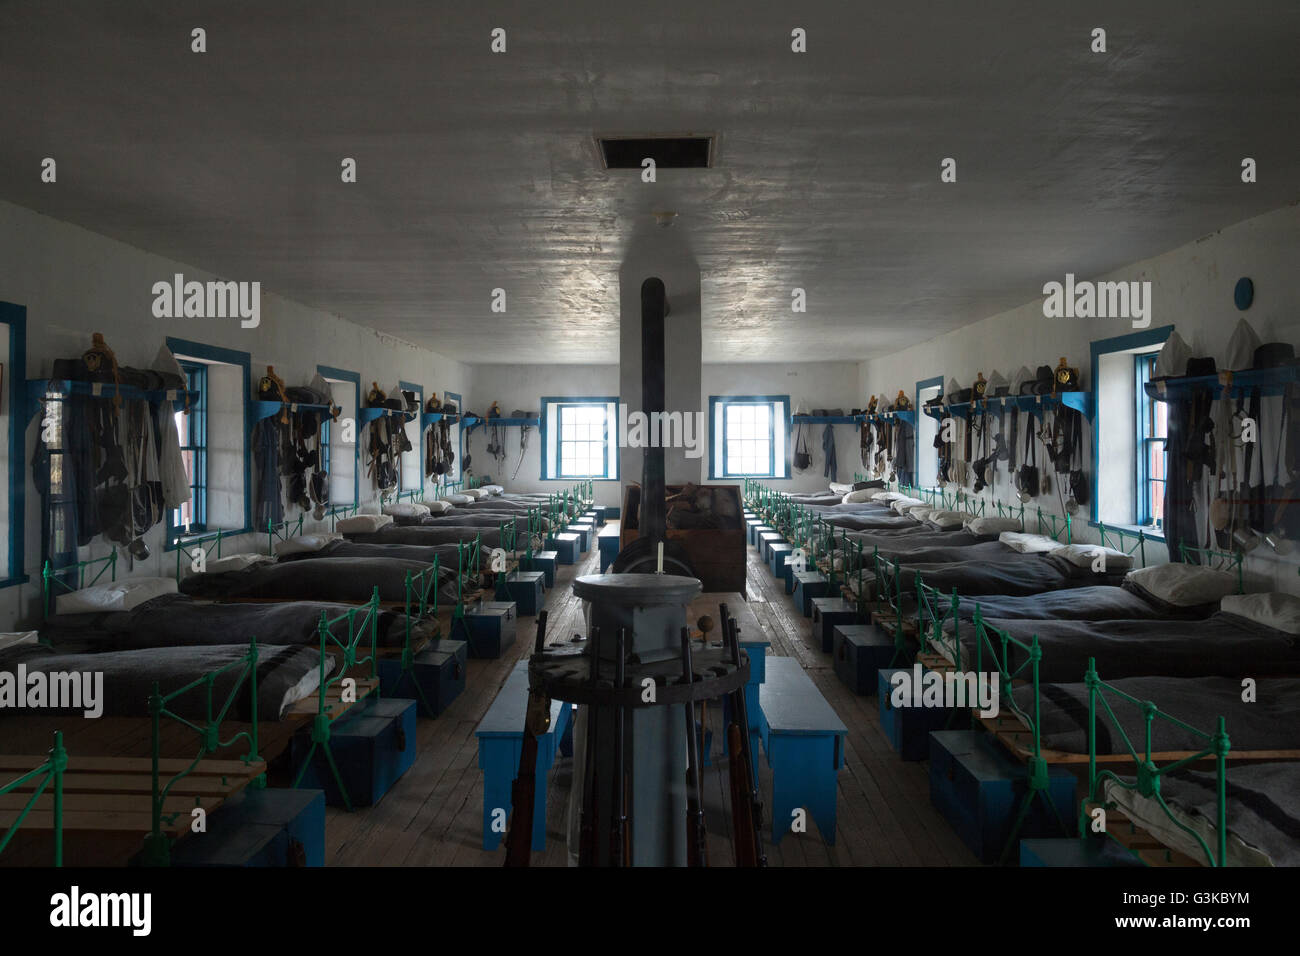 Barrack Room Stock Photos & Barrack Room Stock Images - Alamy